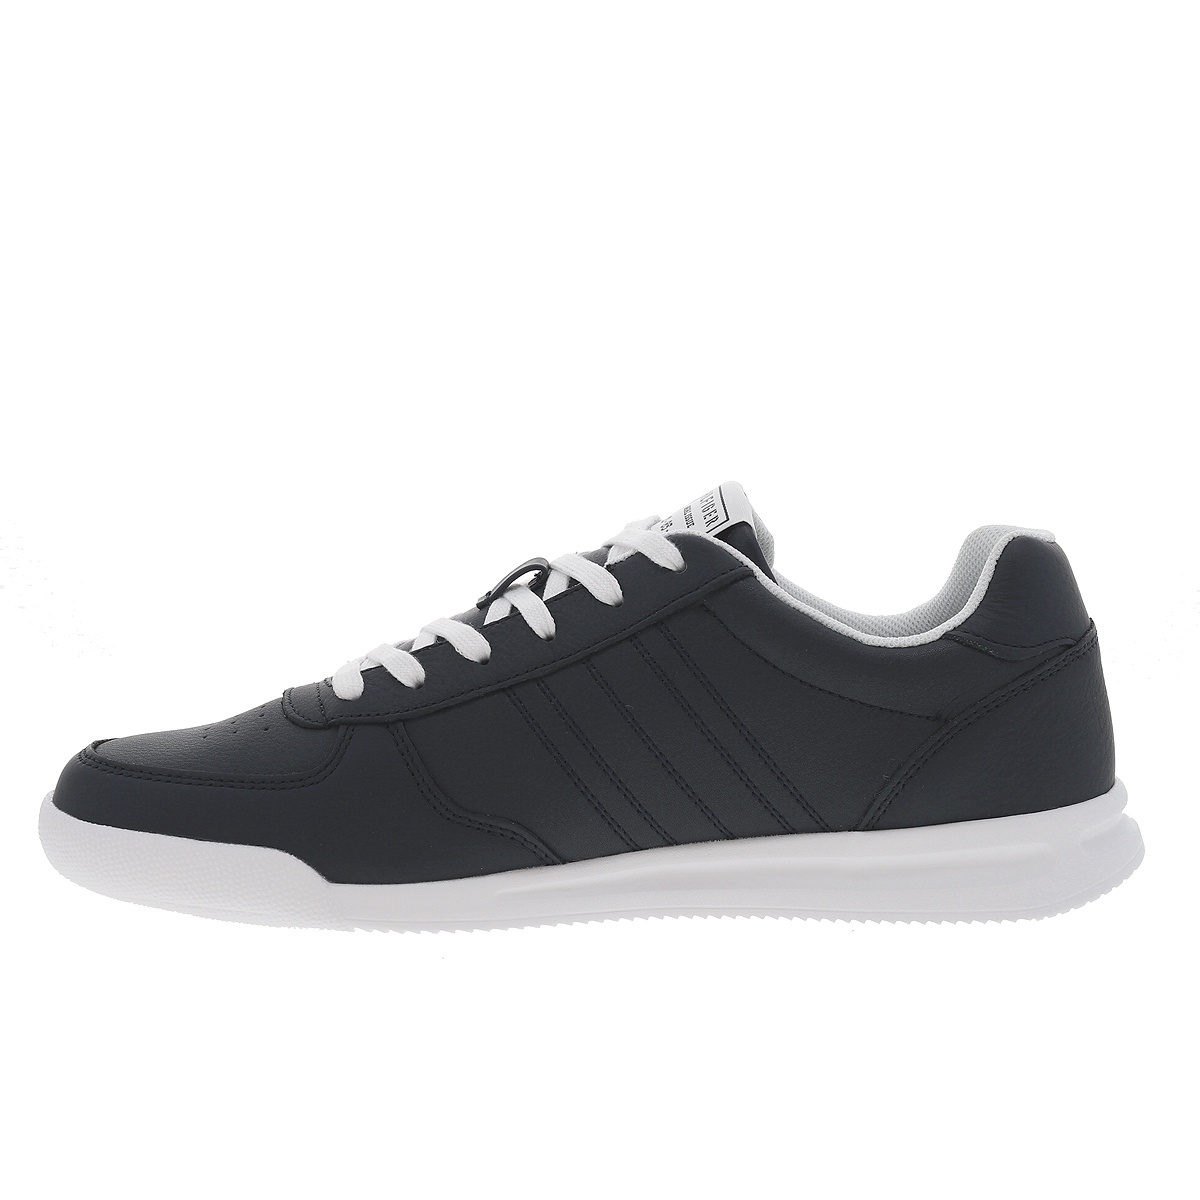 Baskets basses cuir homme TOMMY JEANS